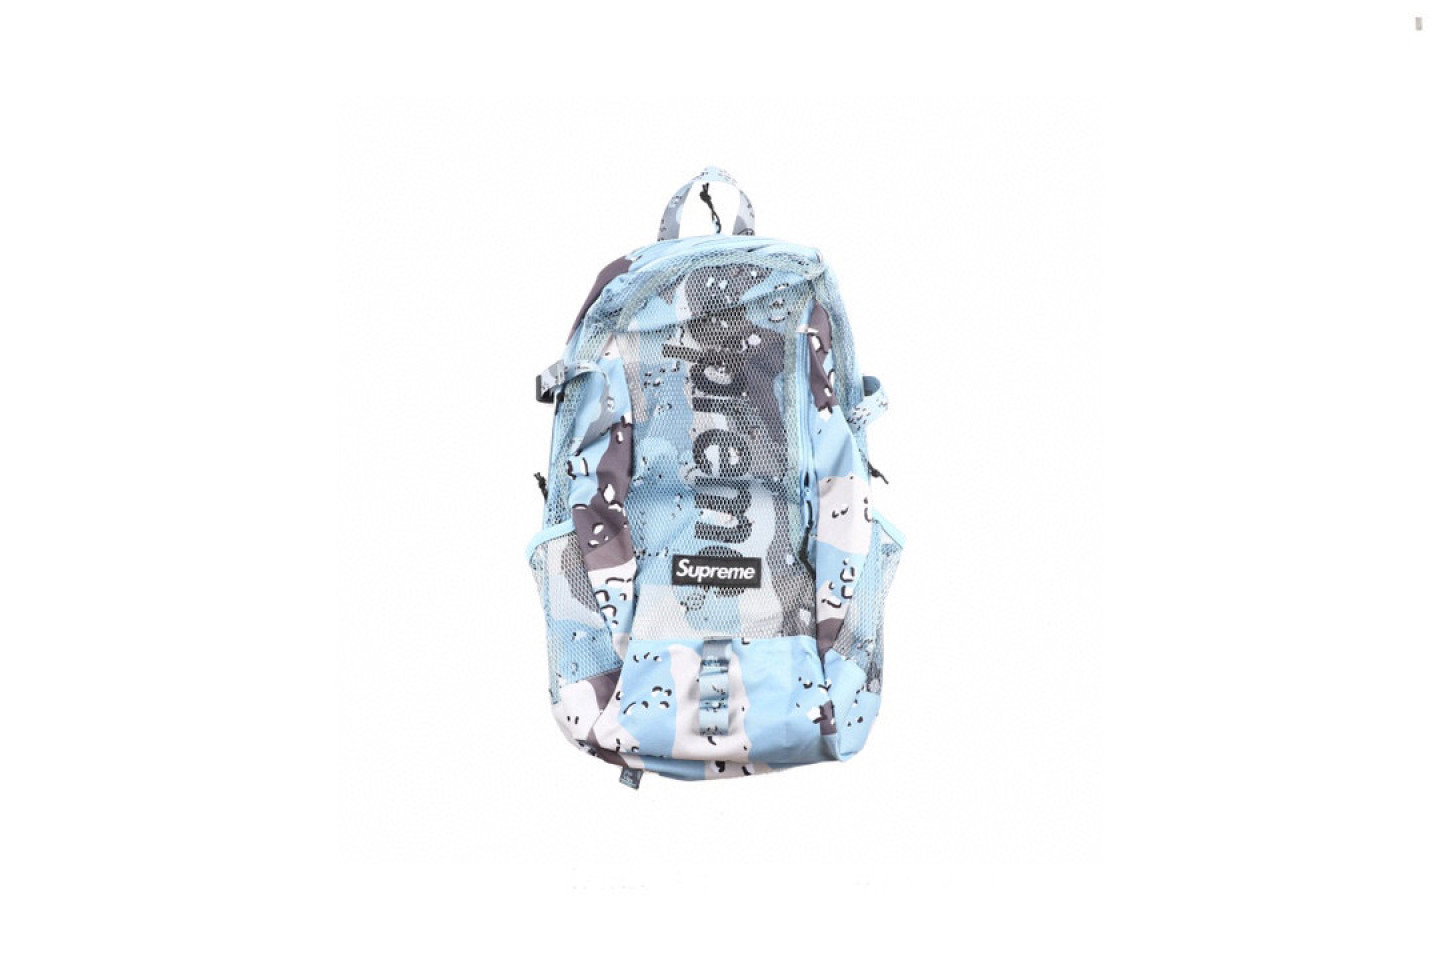 Goods Supreme Backpack (ss20) Blue Chocolate Chip Camo 1 supreme_backpack_ss20_blue_chocolate_chip_camo__1